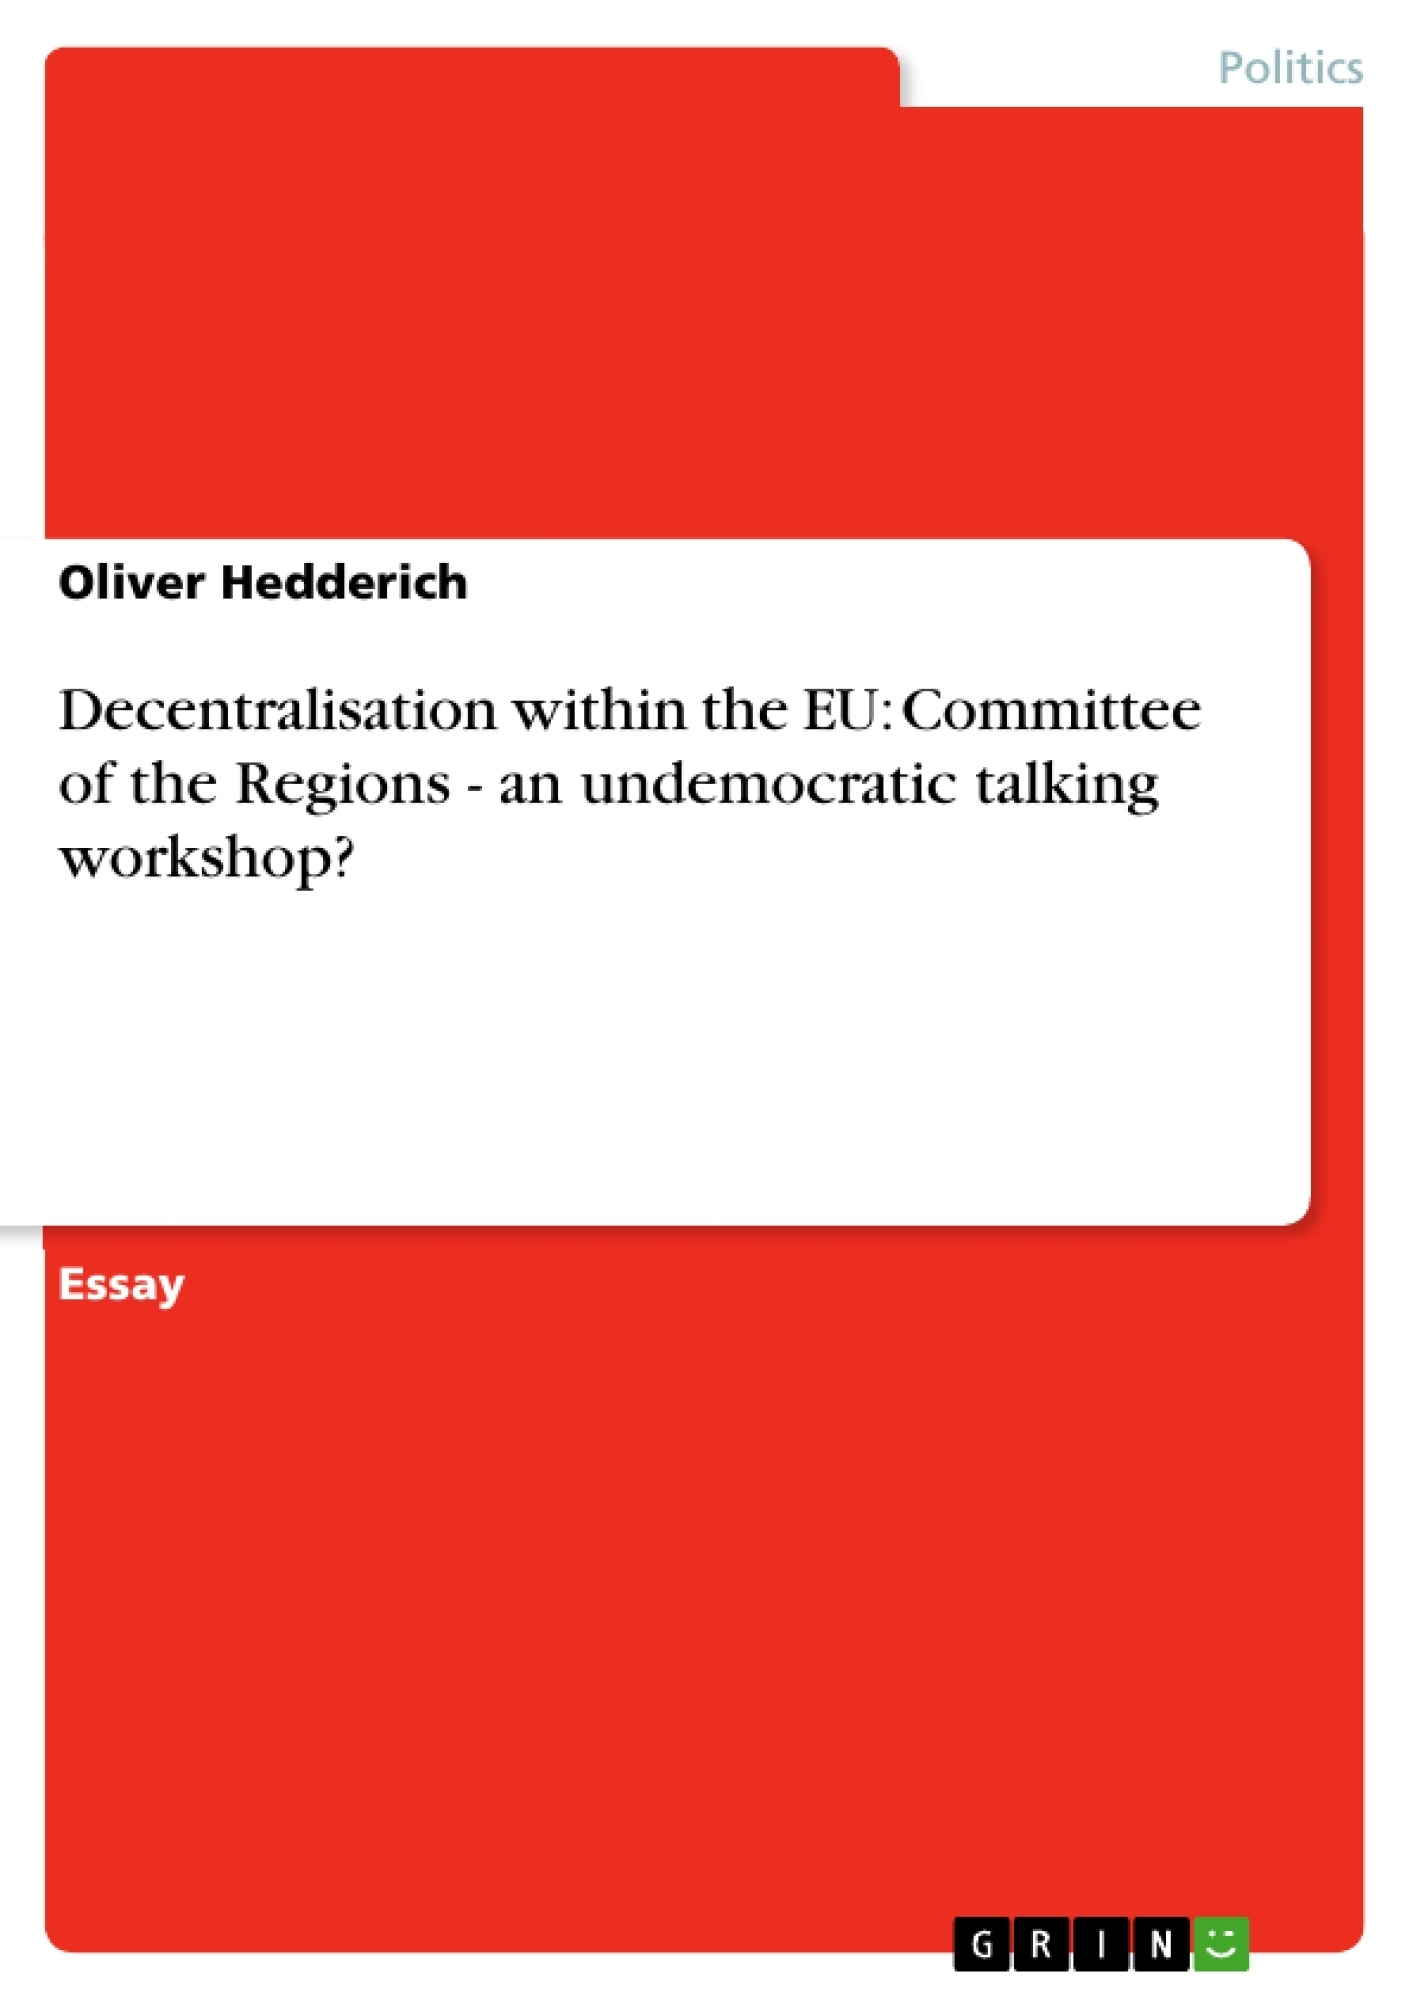 Title: Decentralisation within the EU: Committee of the Regions - an undemocratic talking workshop?